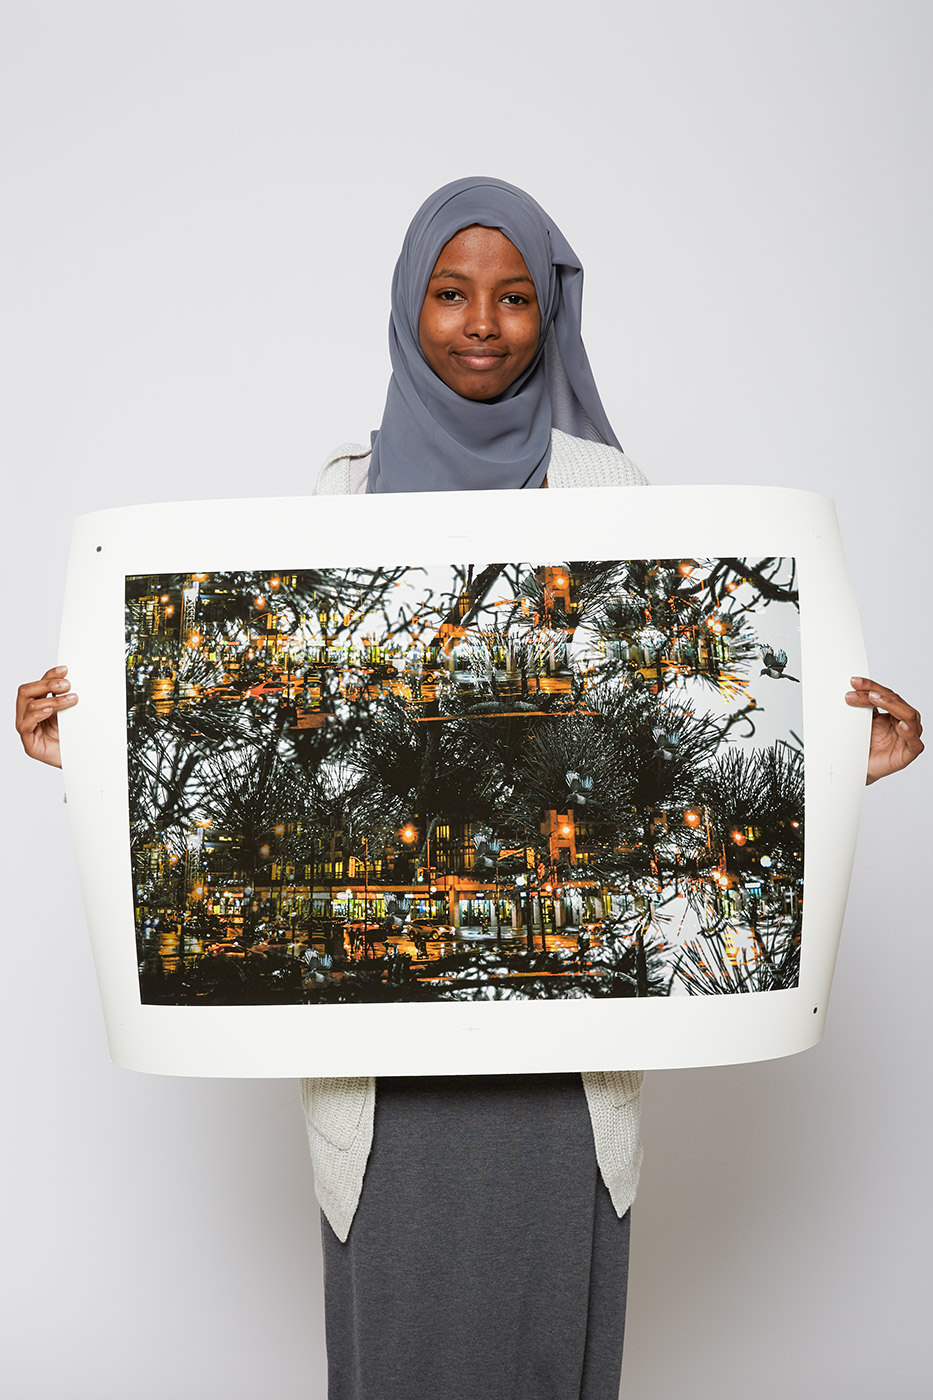 Nadifo Mohamed, Sir John A. Macdonald Secondary School